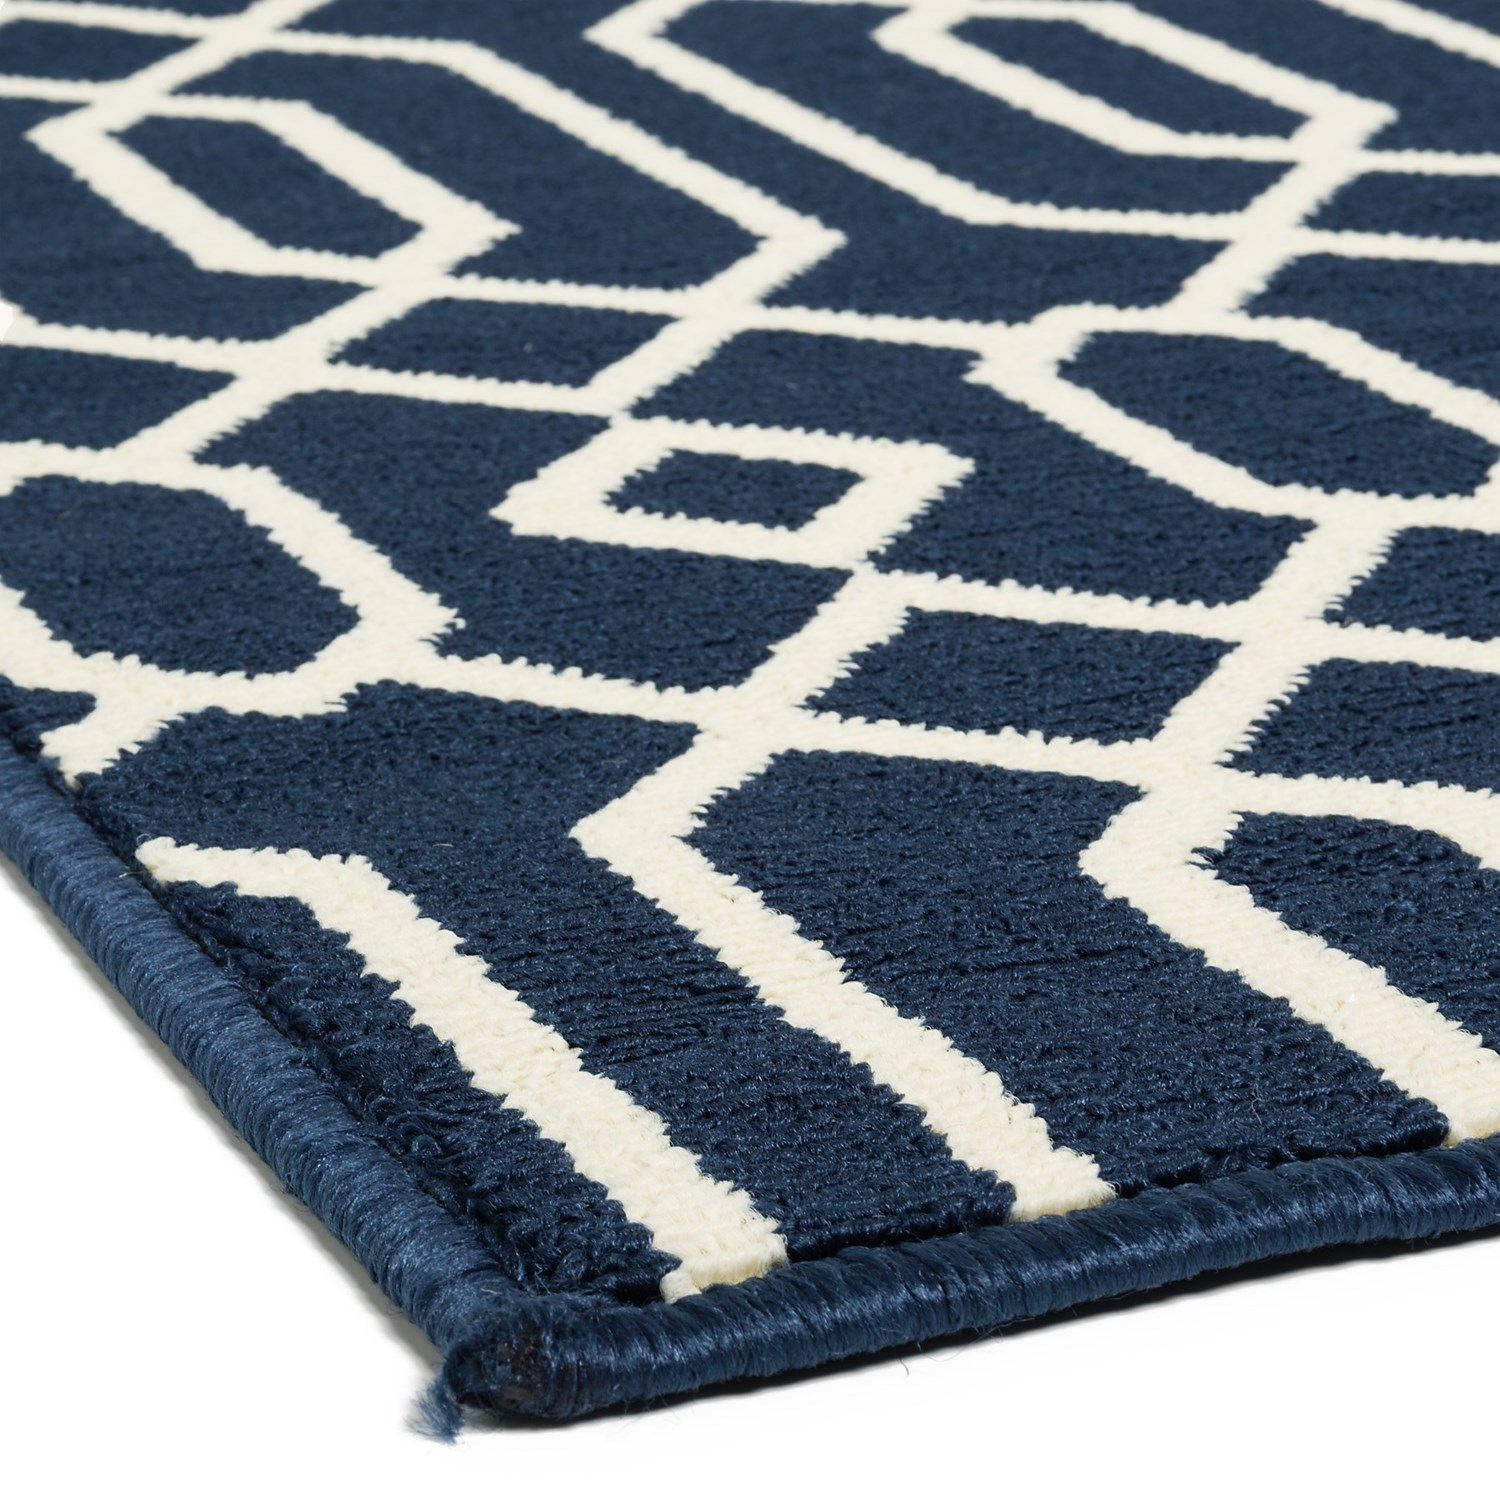 Momeni Geometric Collection Indoor Outdoor Area Rug 7'10